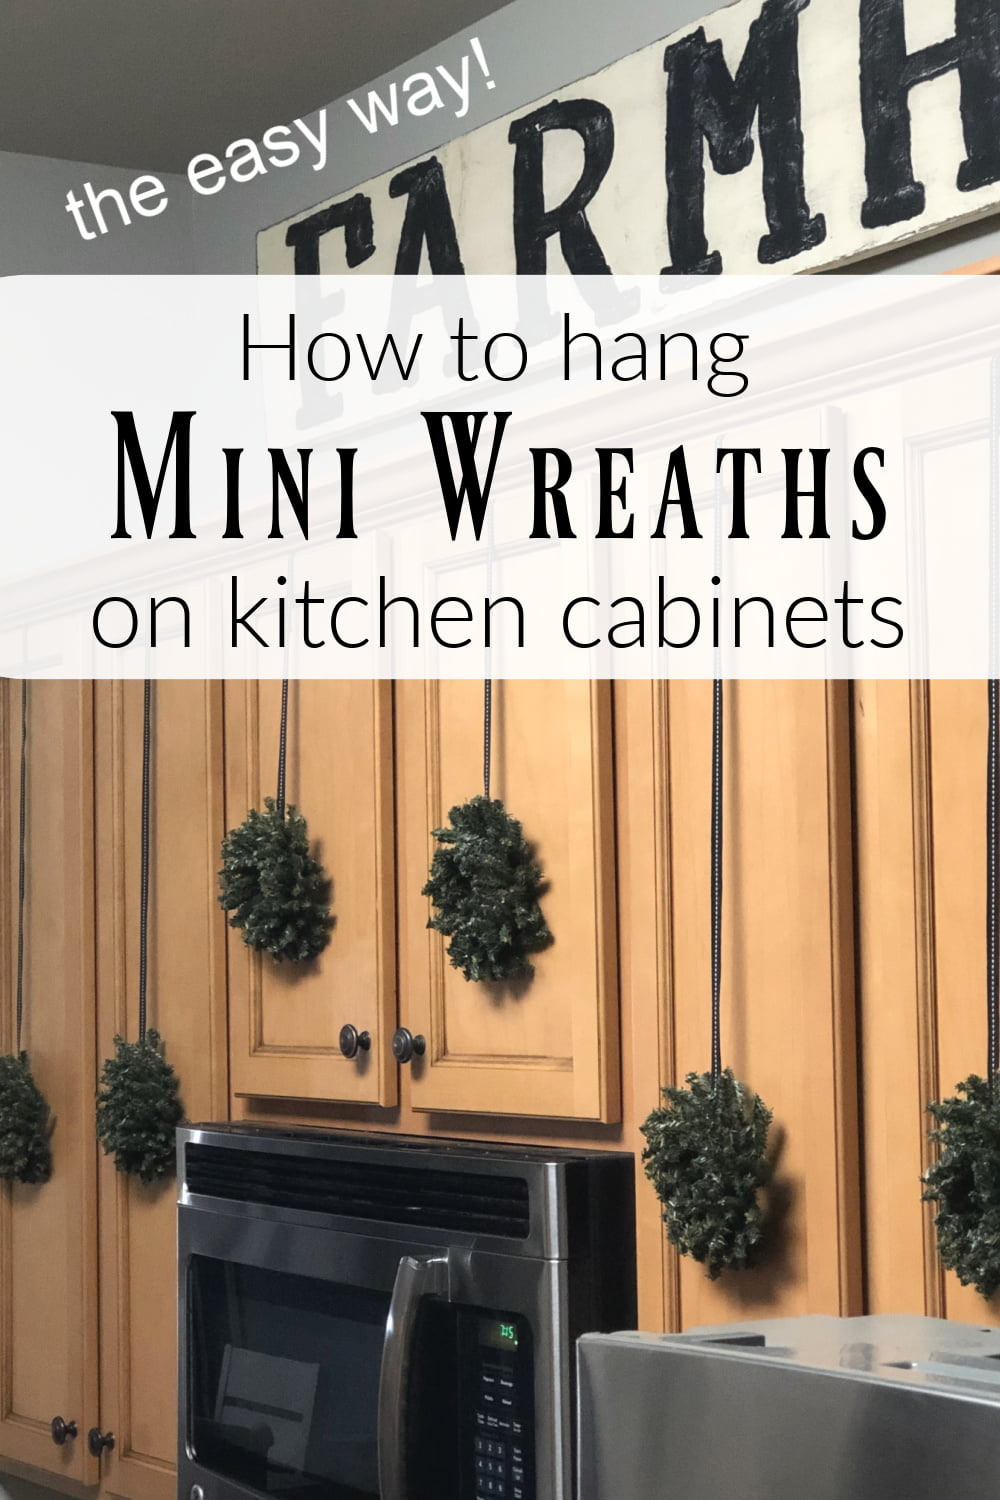 Eye Catching Mini Wreaths That Will Transform Your Holiday Kitchen Cabinets